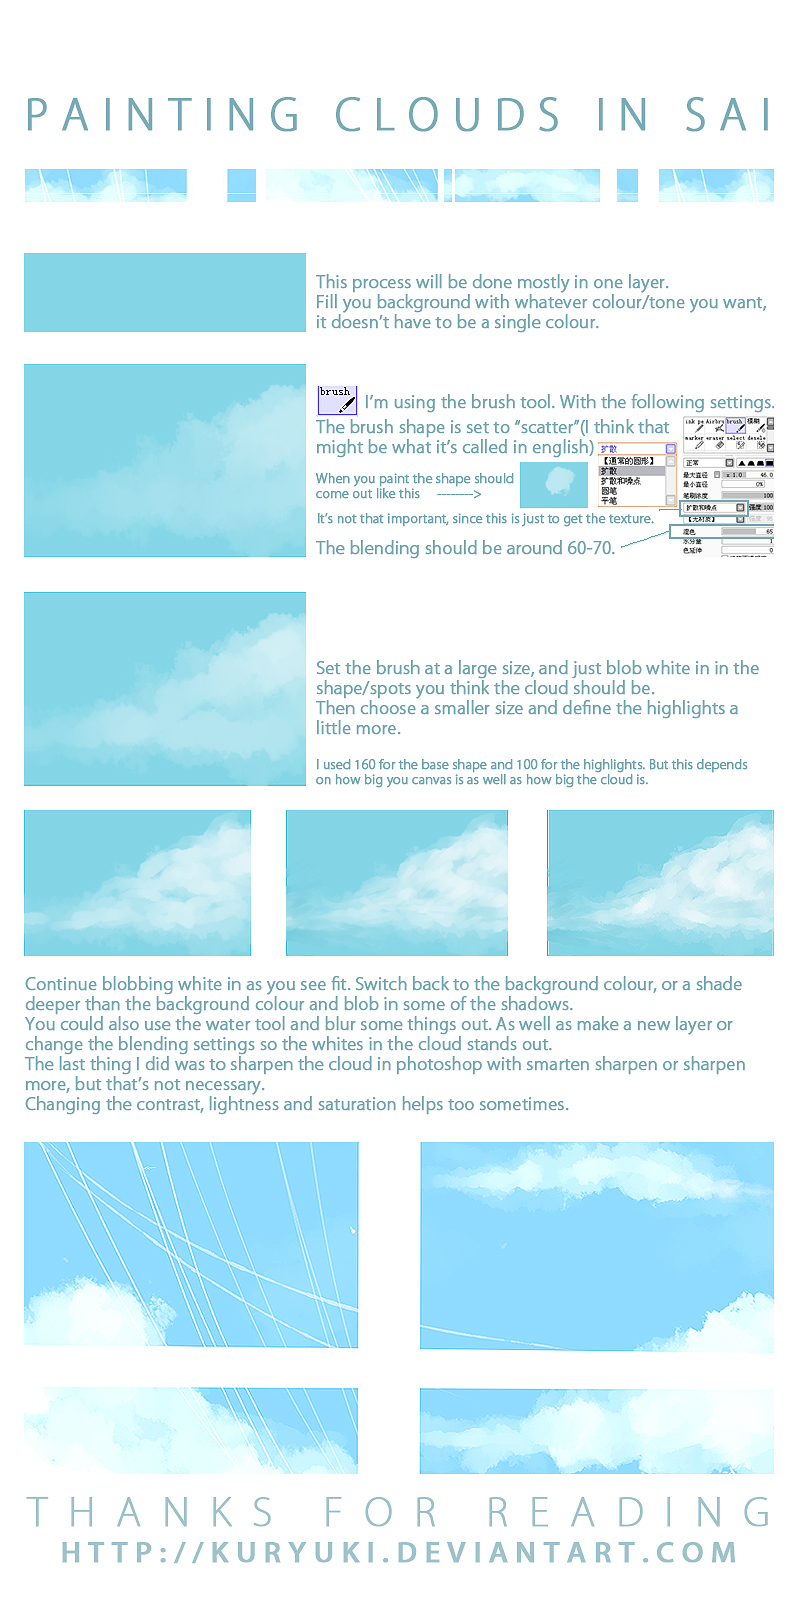 Cloud Painting Tutorial in SAI by kuryuki